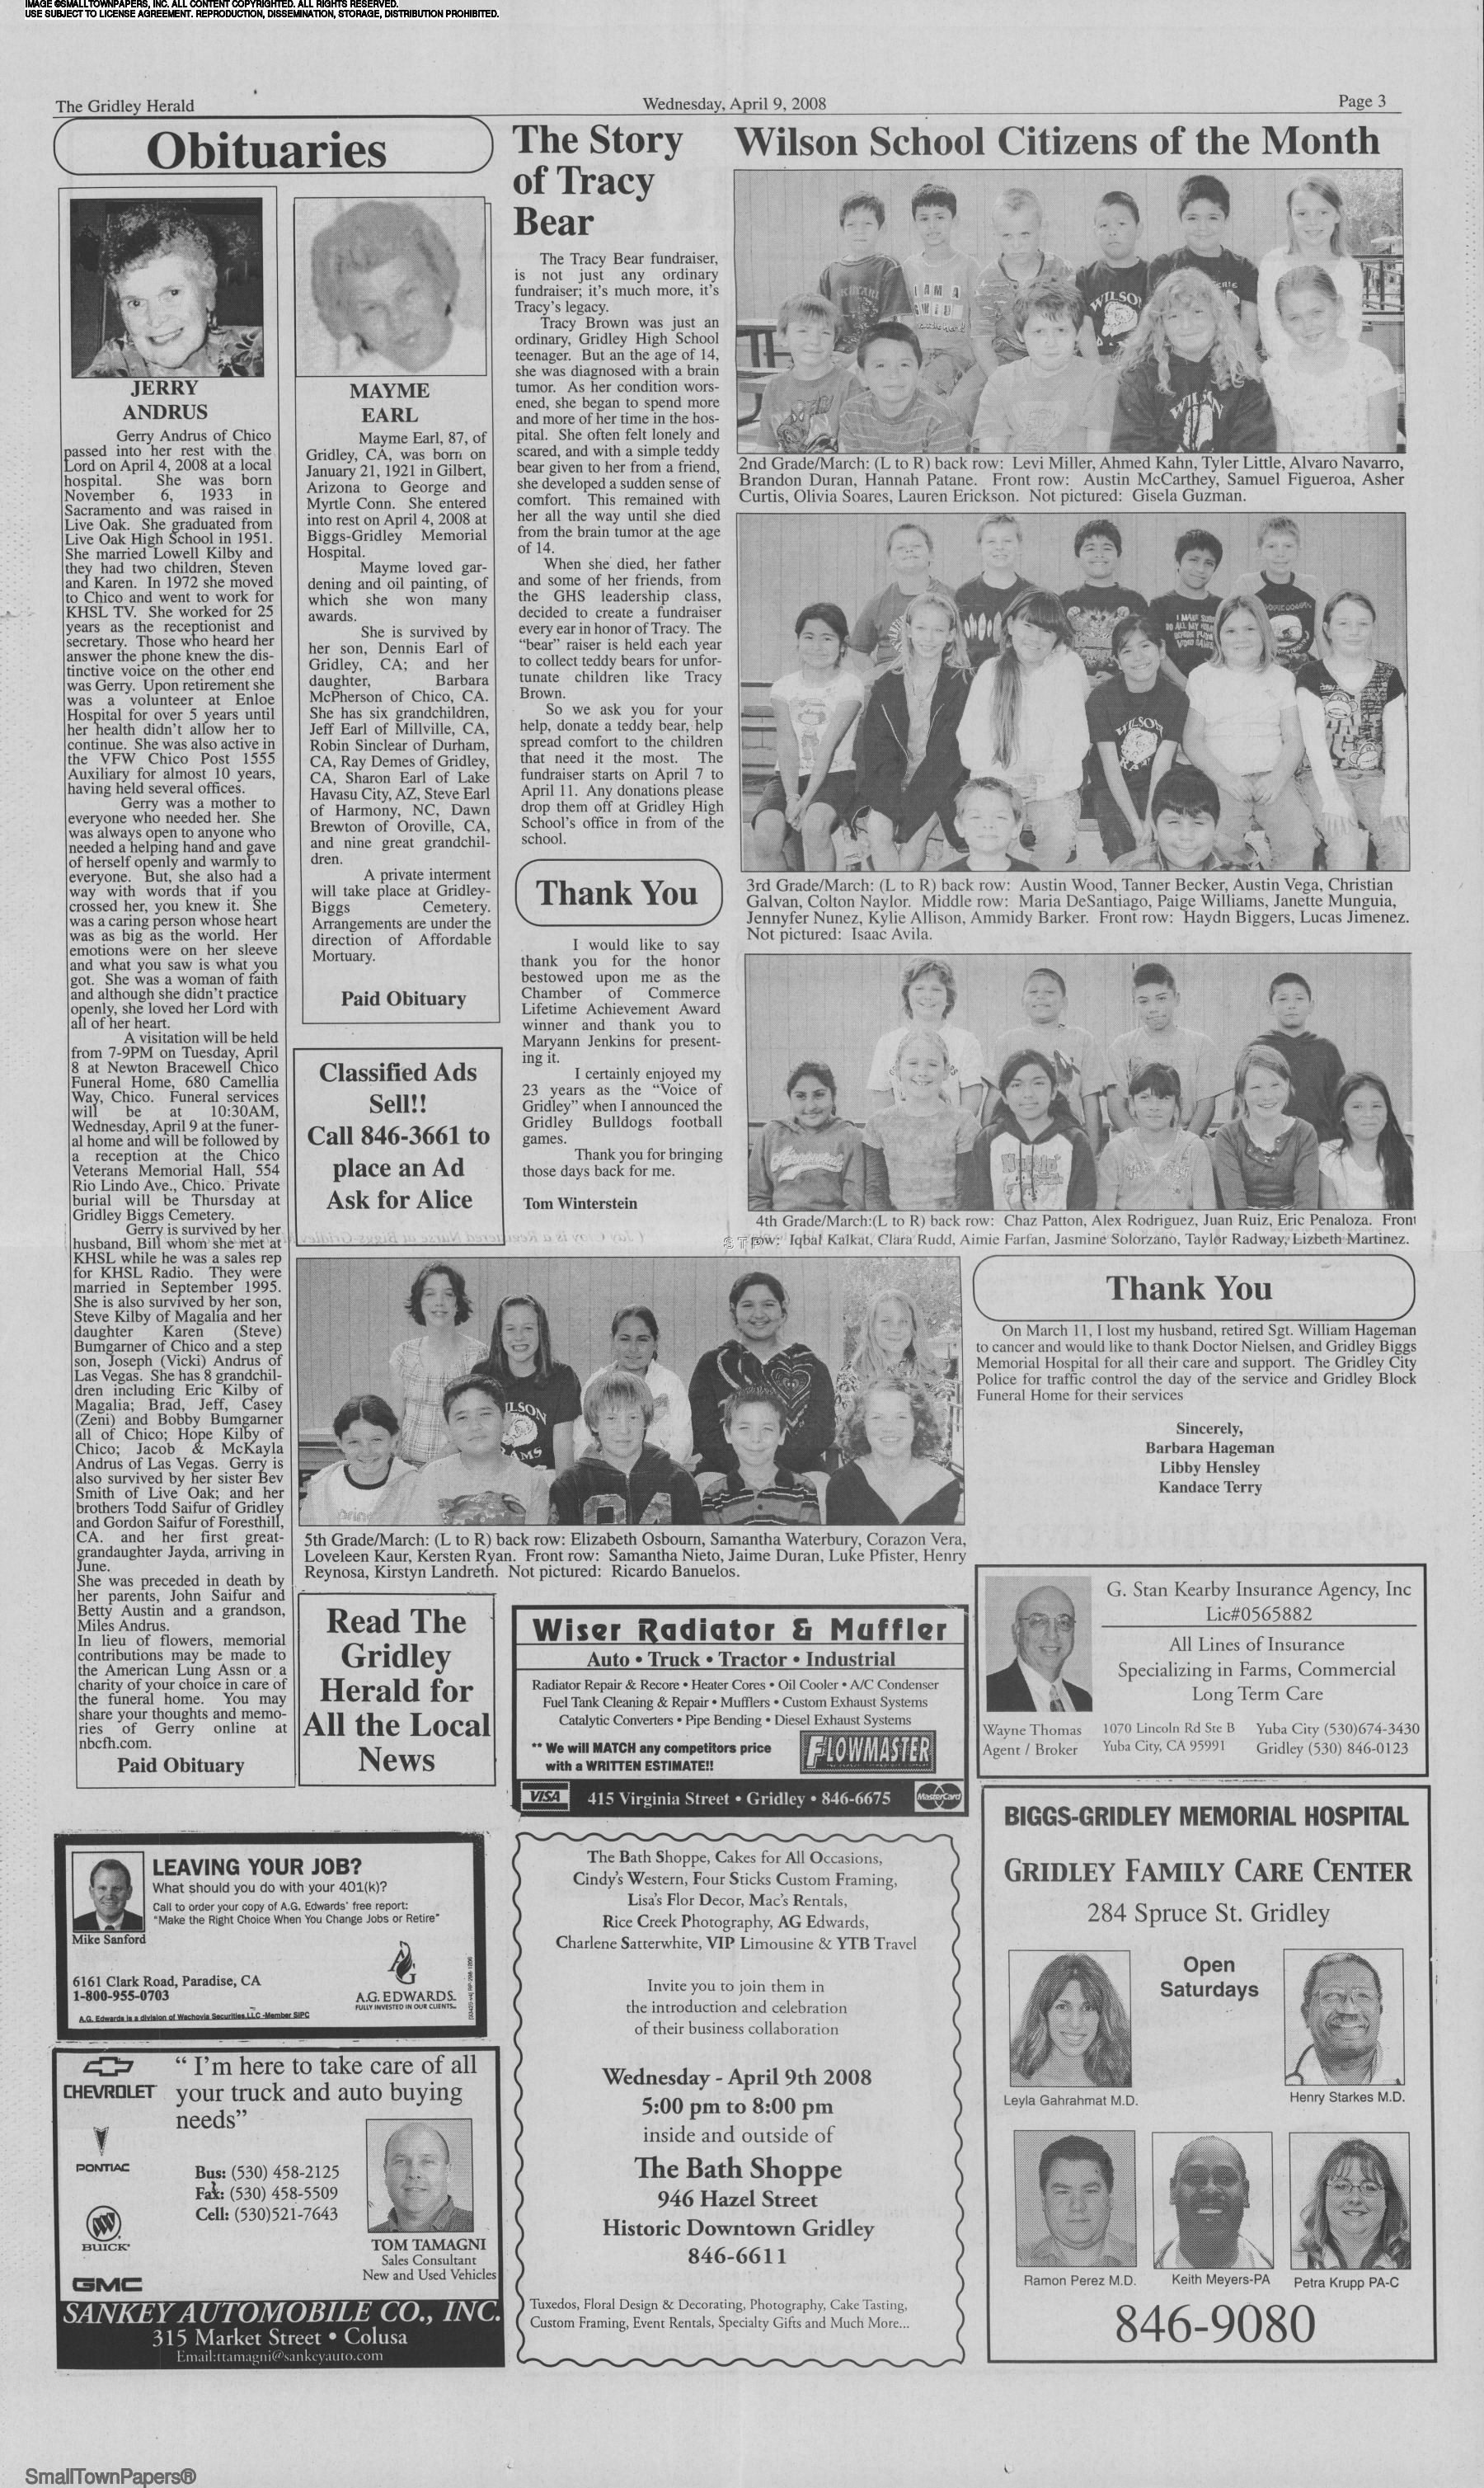 The Gridley Herald April 9, 2008: Page 3